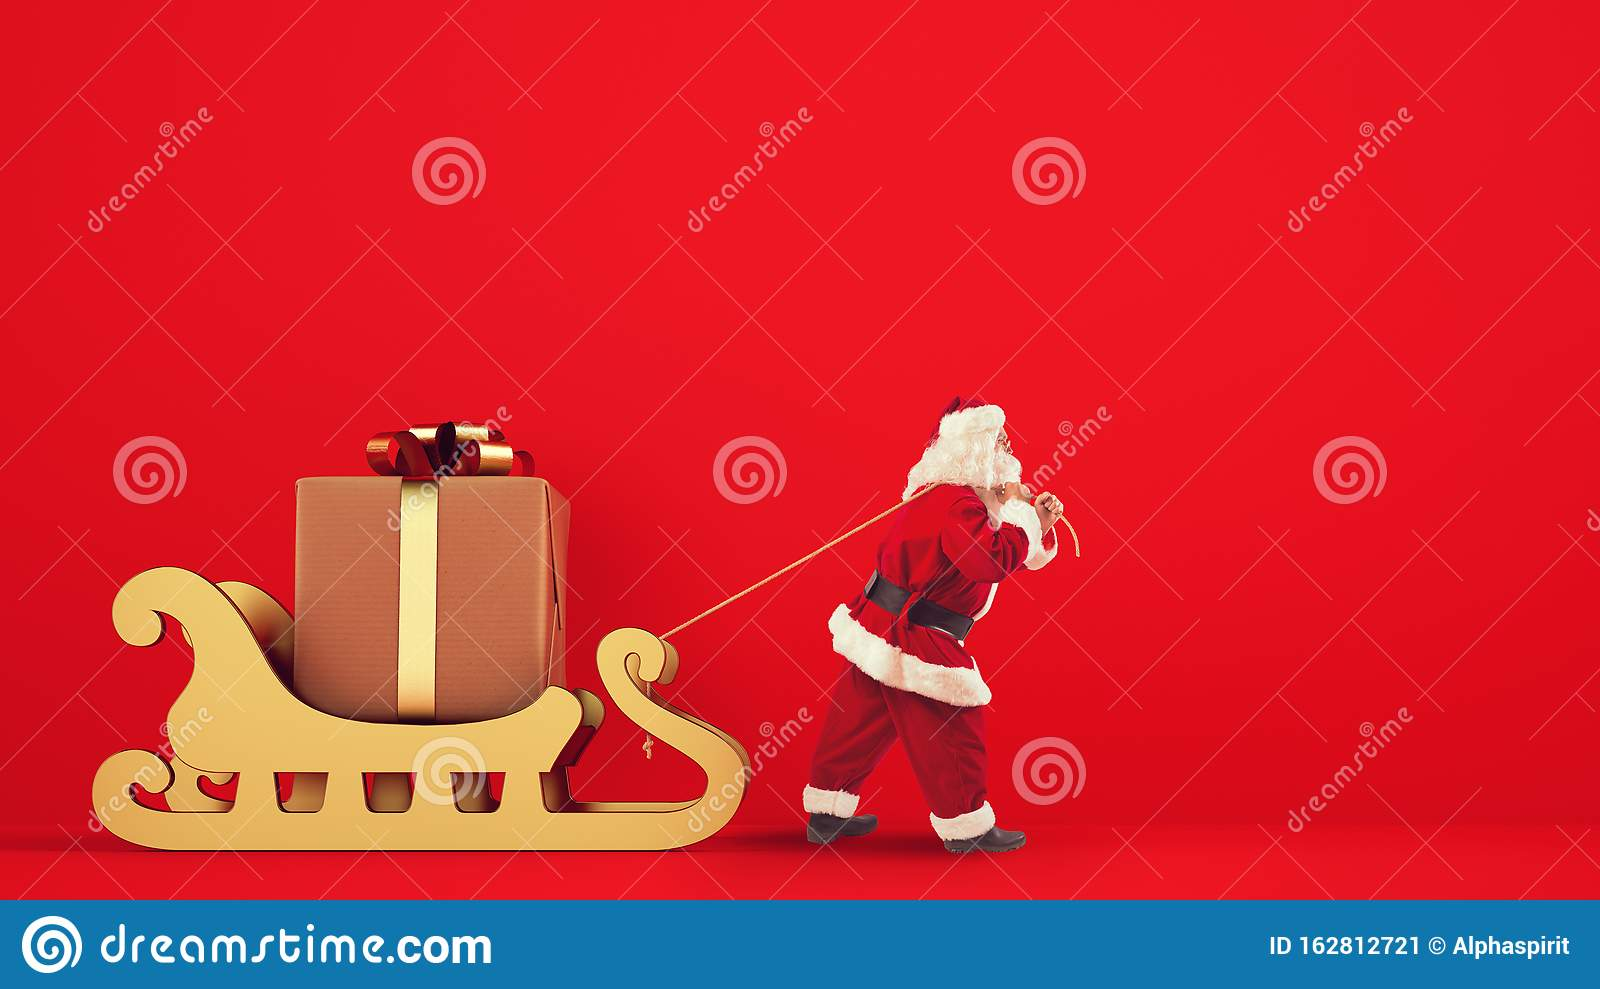 Santa Claus drags a big gift with a golden sleigh on a red background